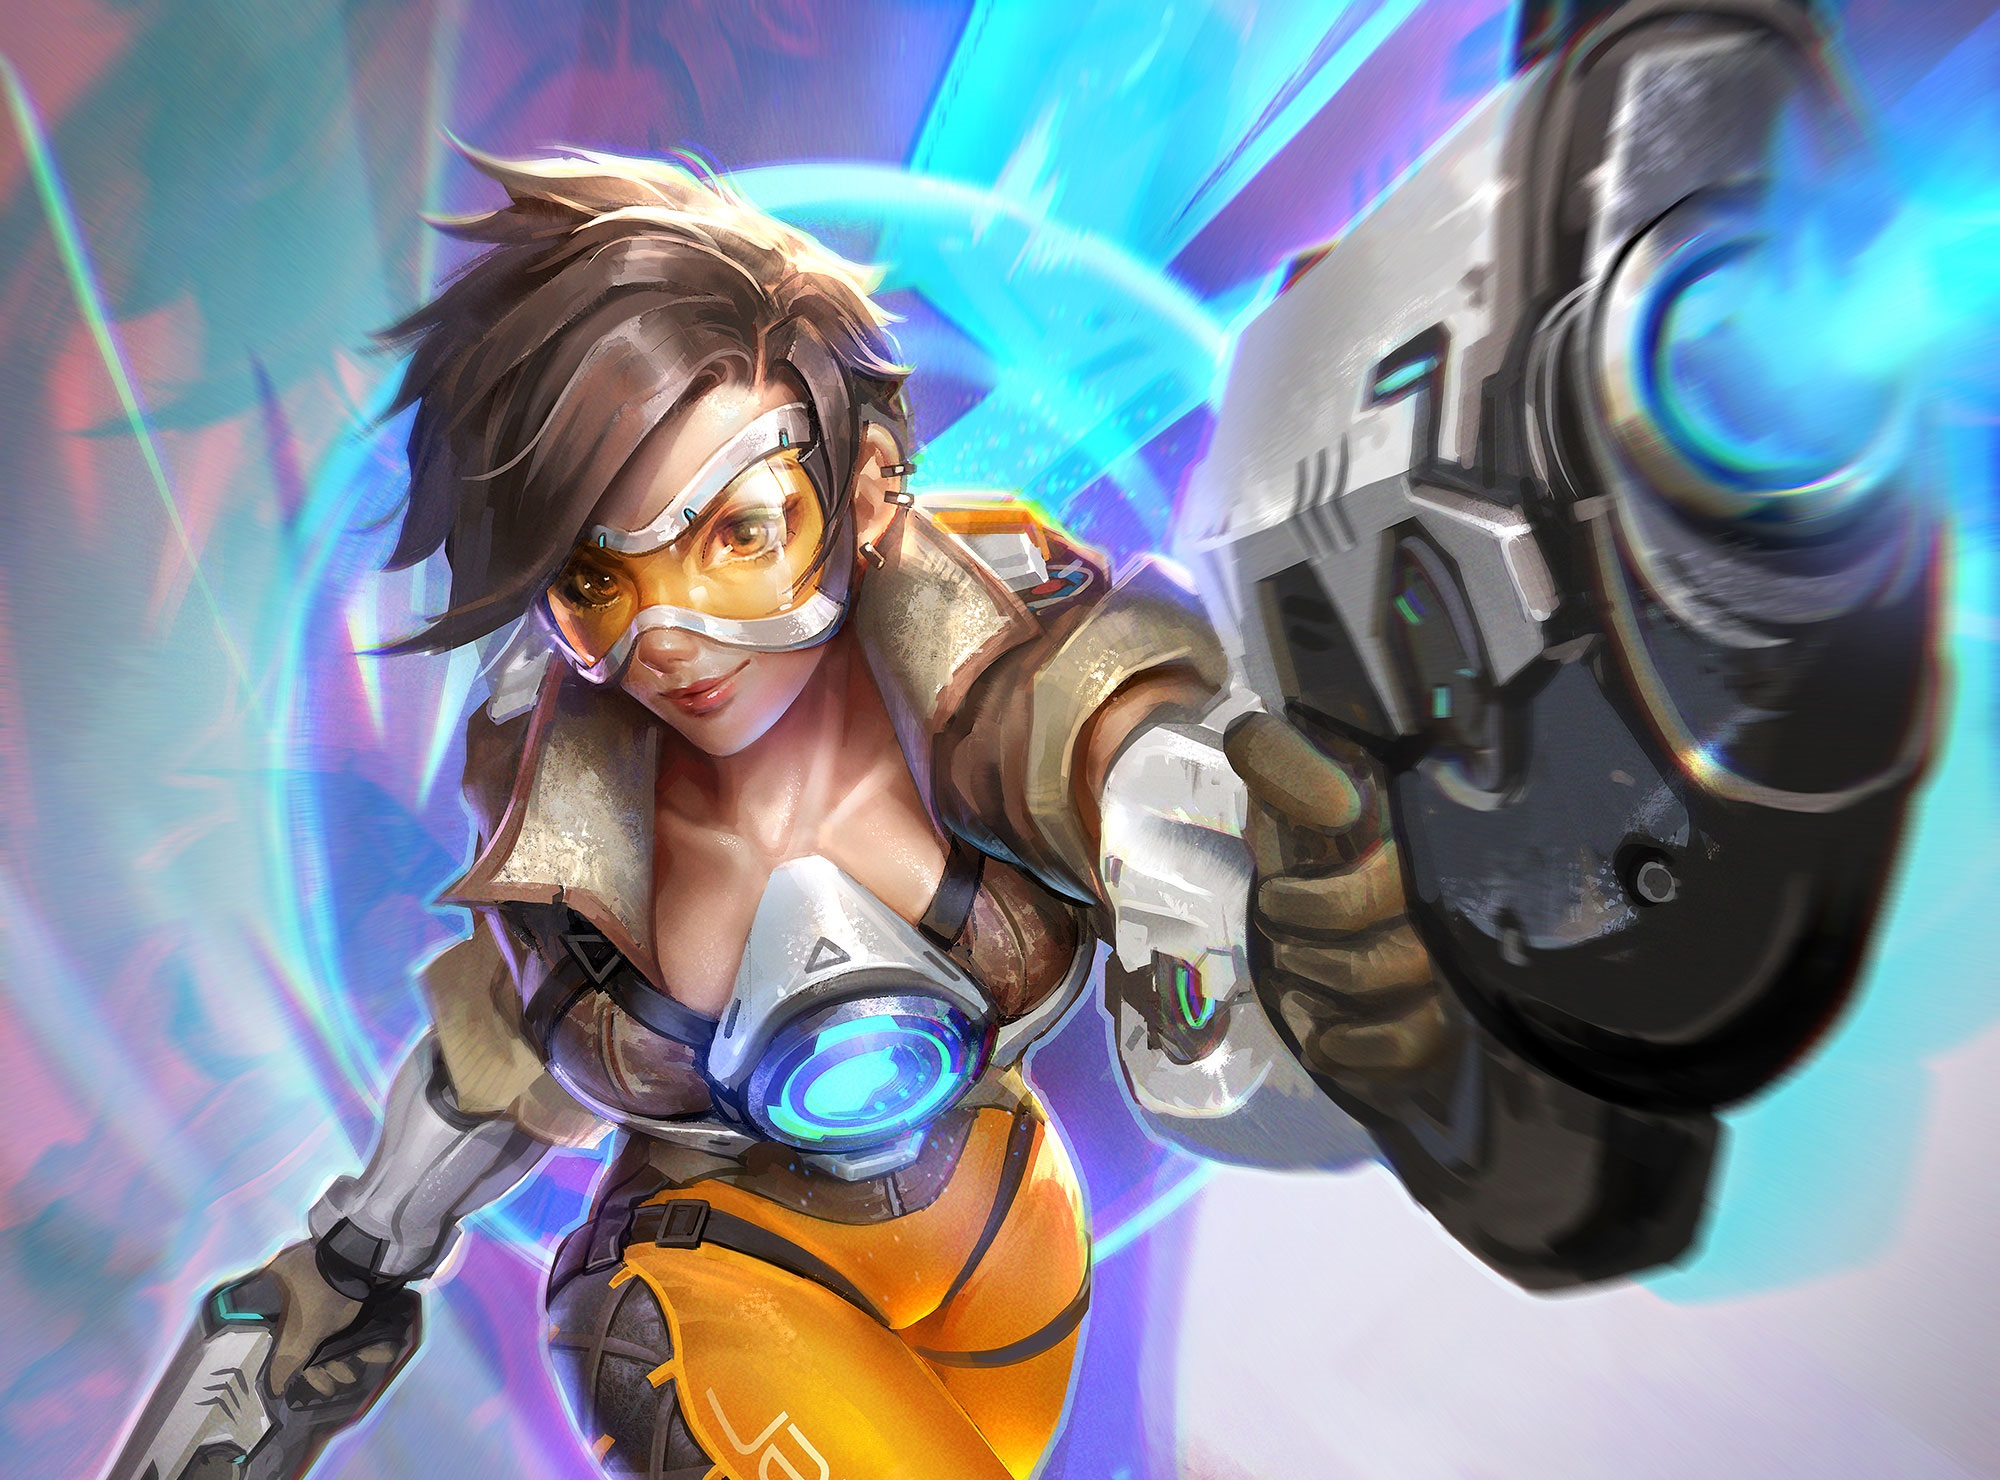 186 Tracer Overwatch HD Wallpapers Backgrounds